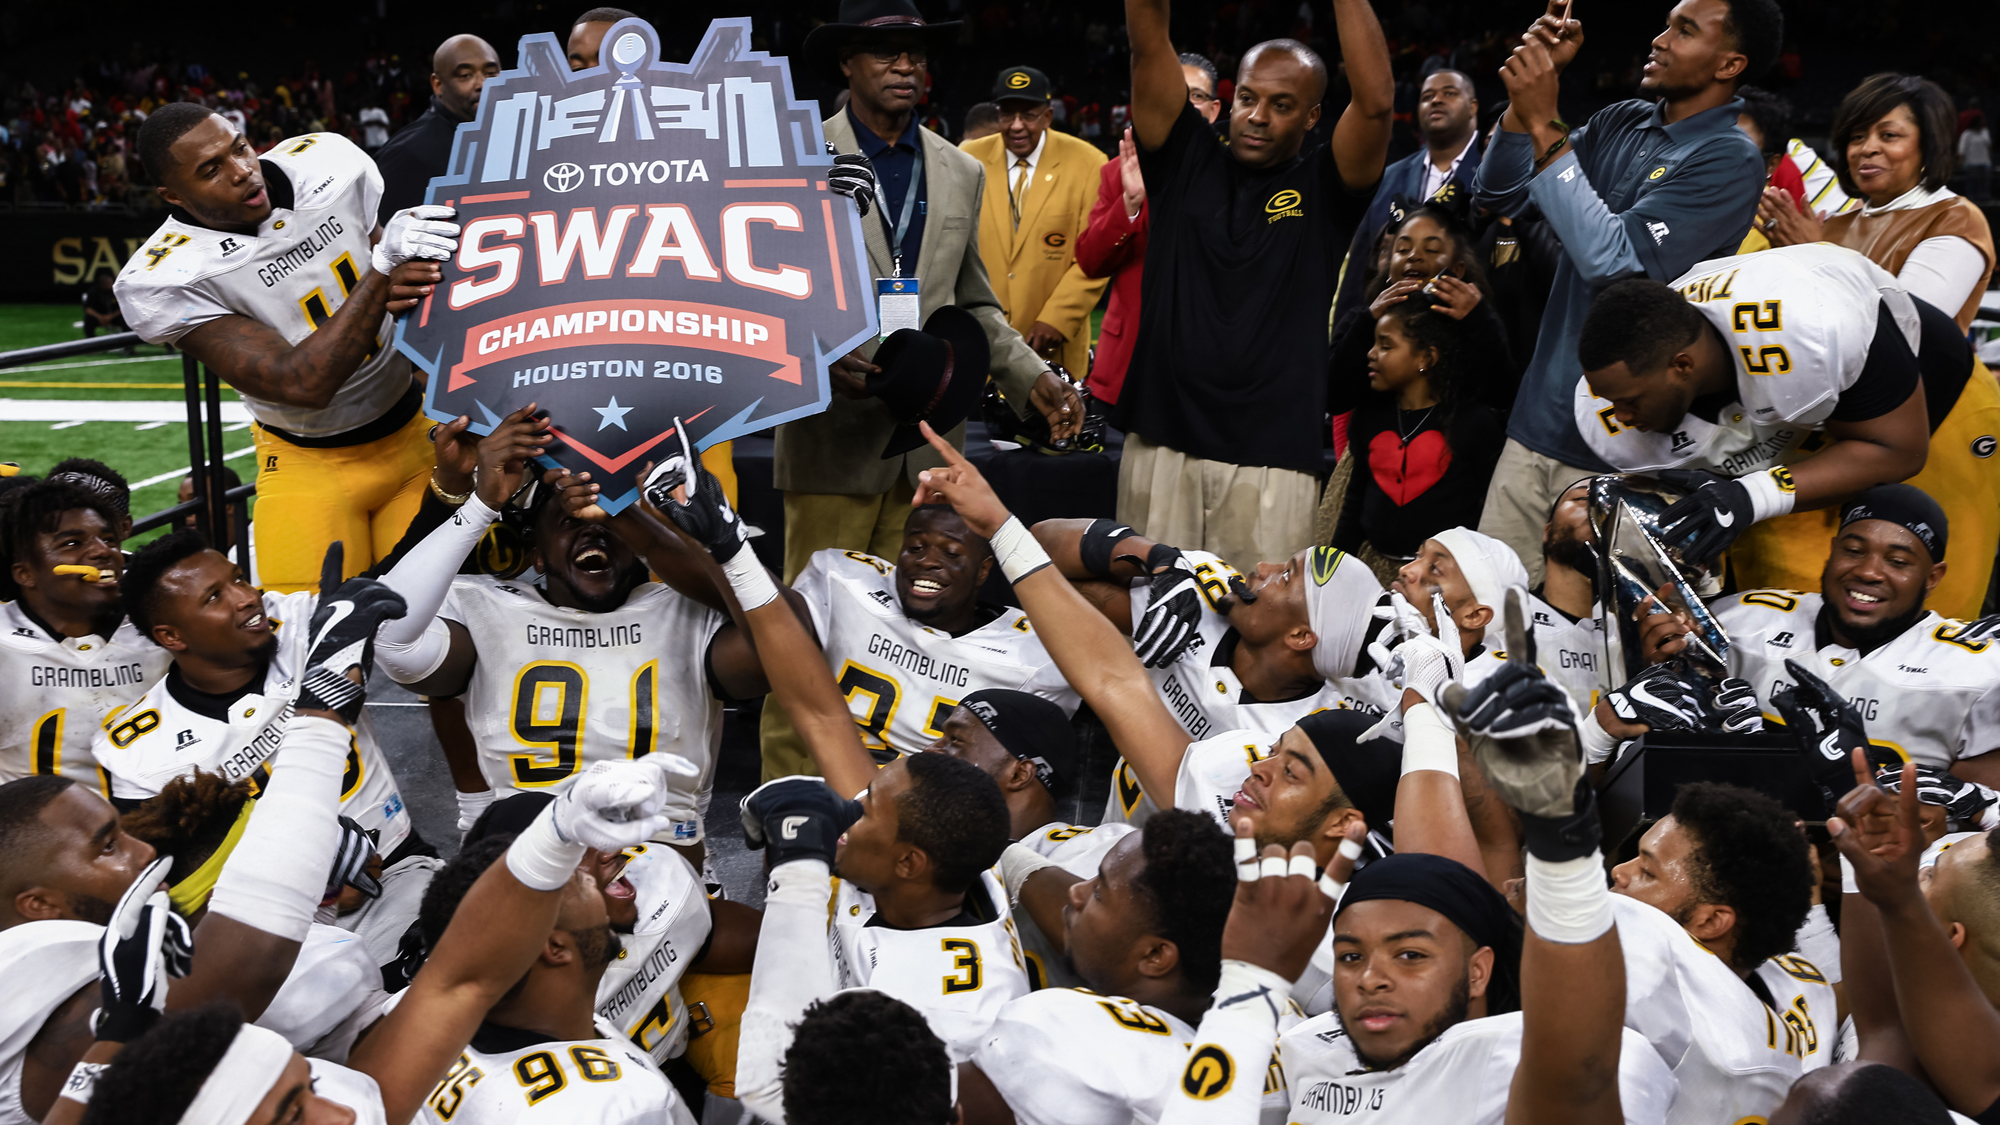 NCAA FOOTBALL: NOV 26 Bayou Classic – Southern v Grambling